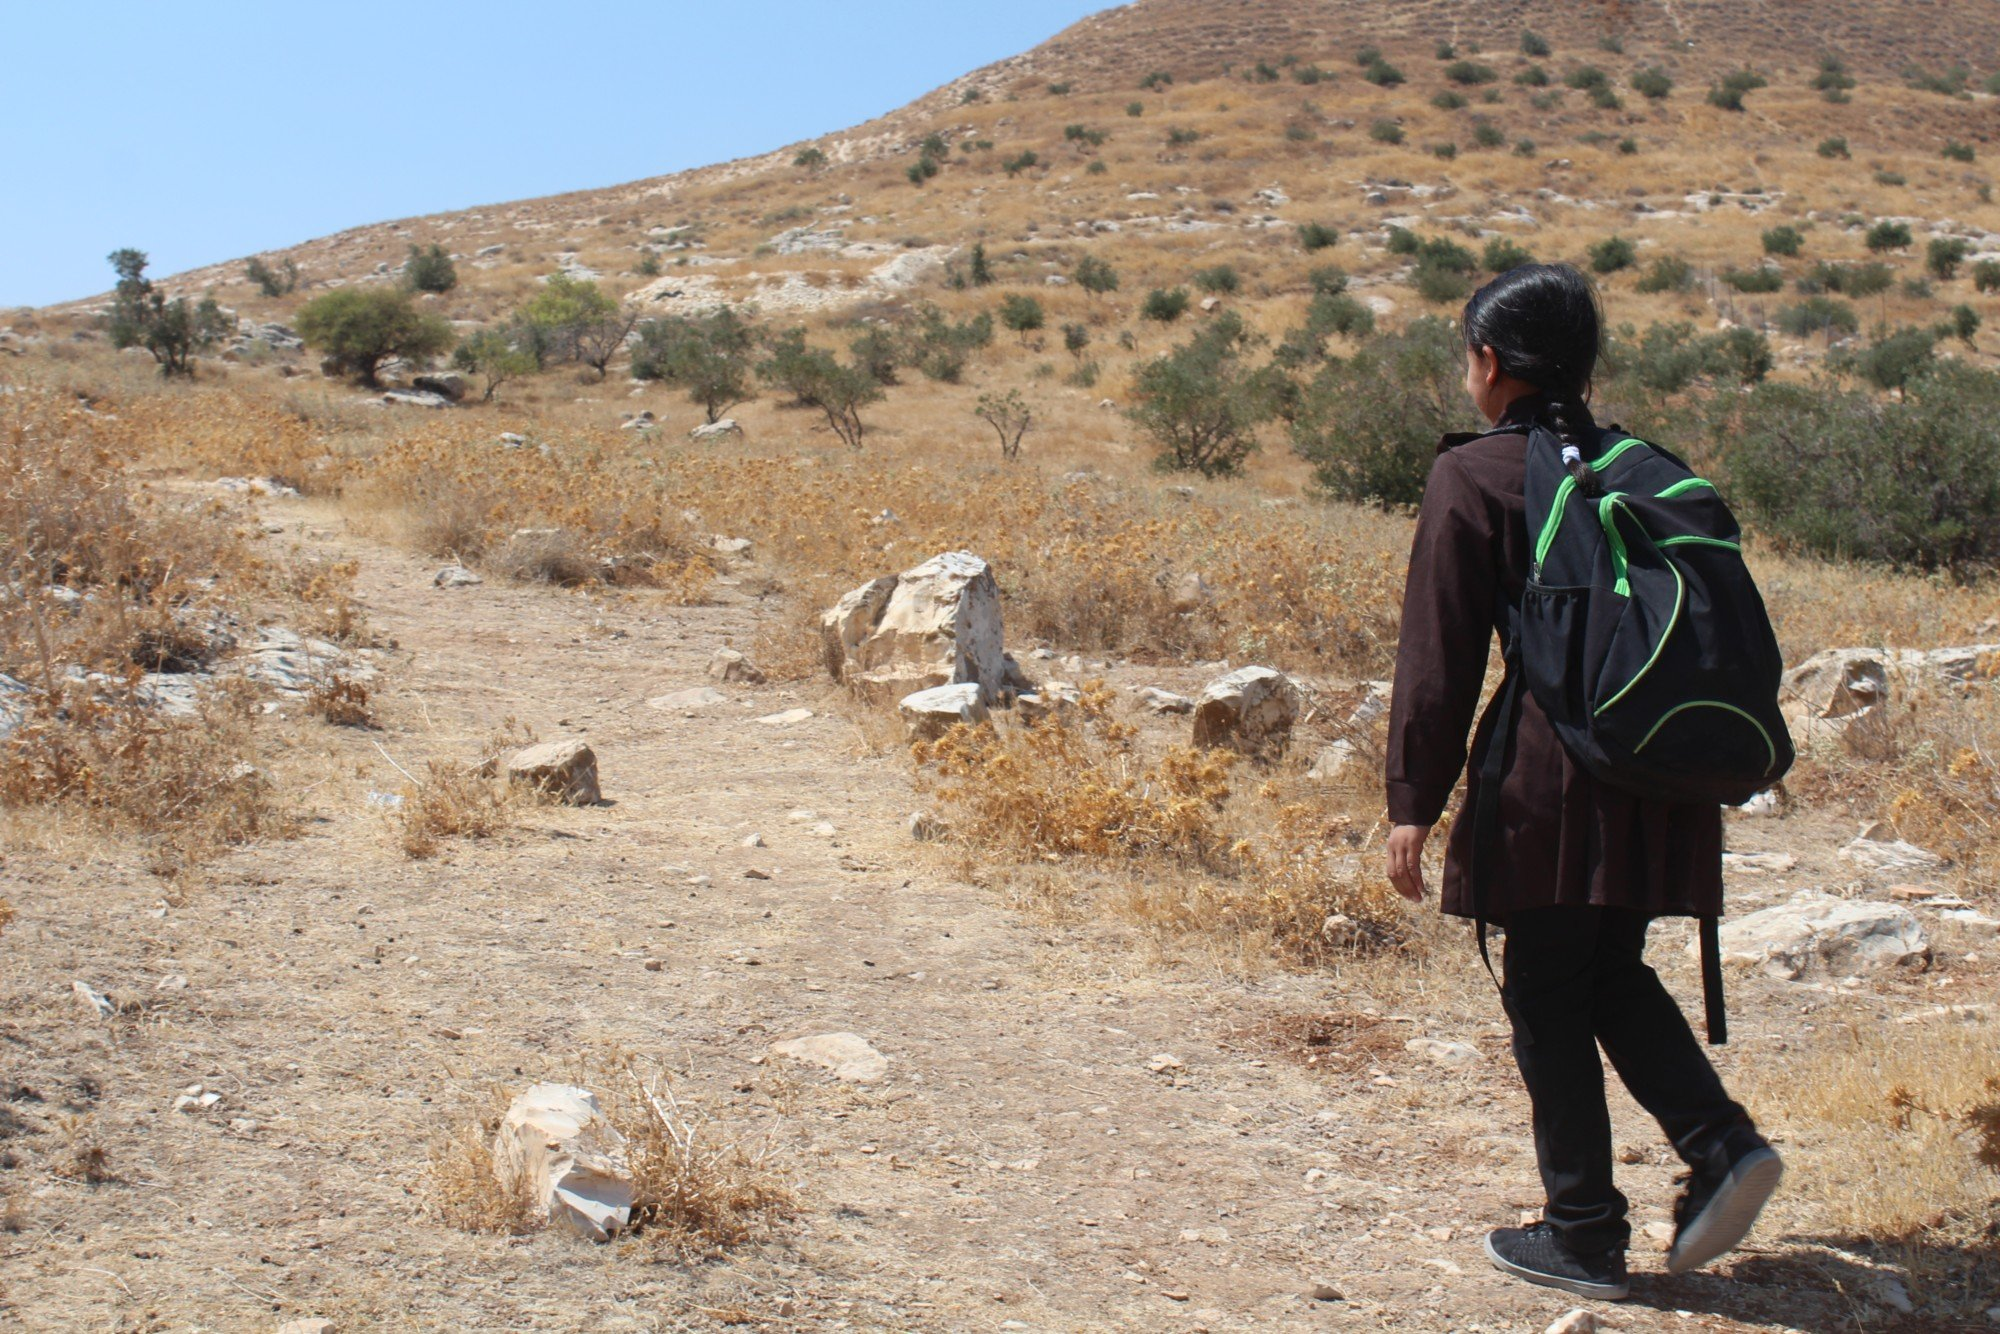 Ibtisam, like many other children in Area C, has to walk on craggy dirt roads to go to school (MEE/Shatha Hammad)